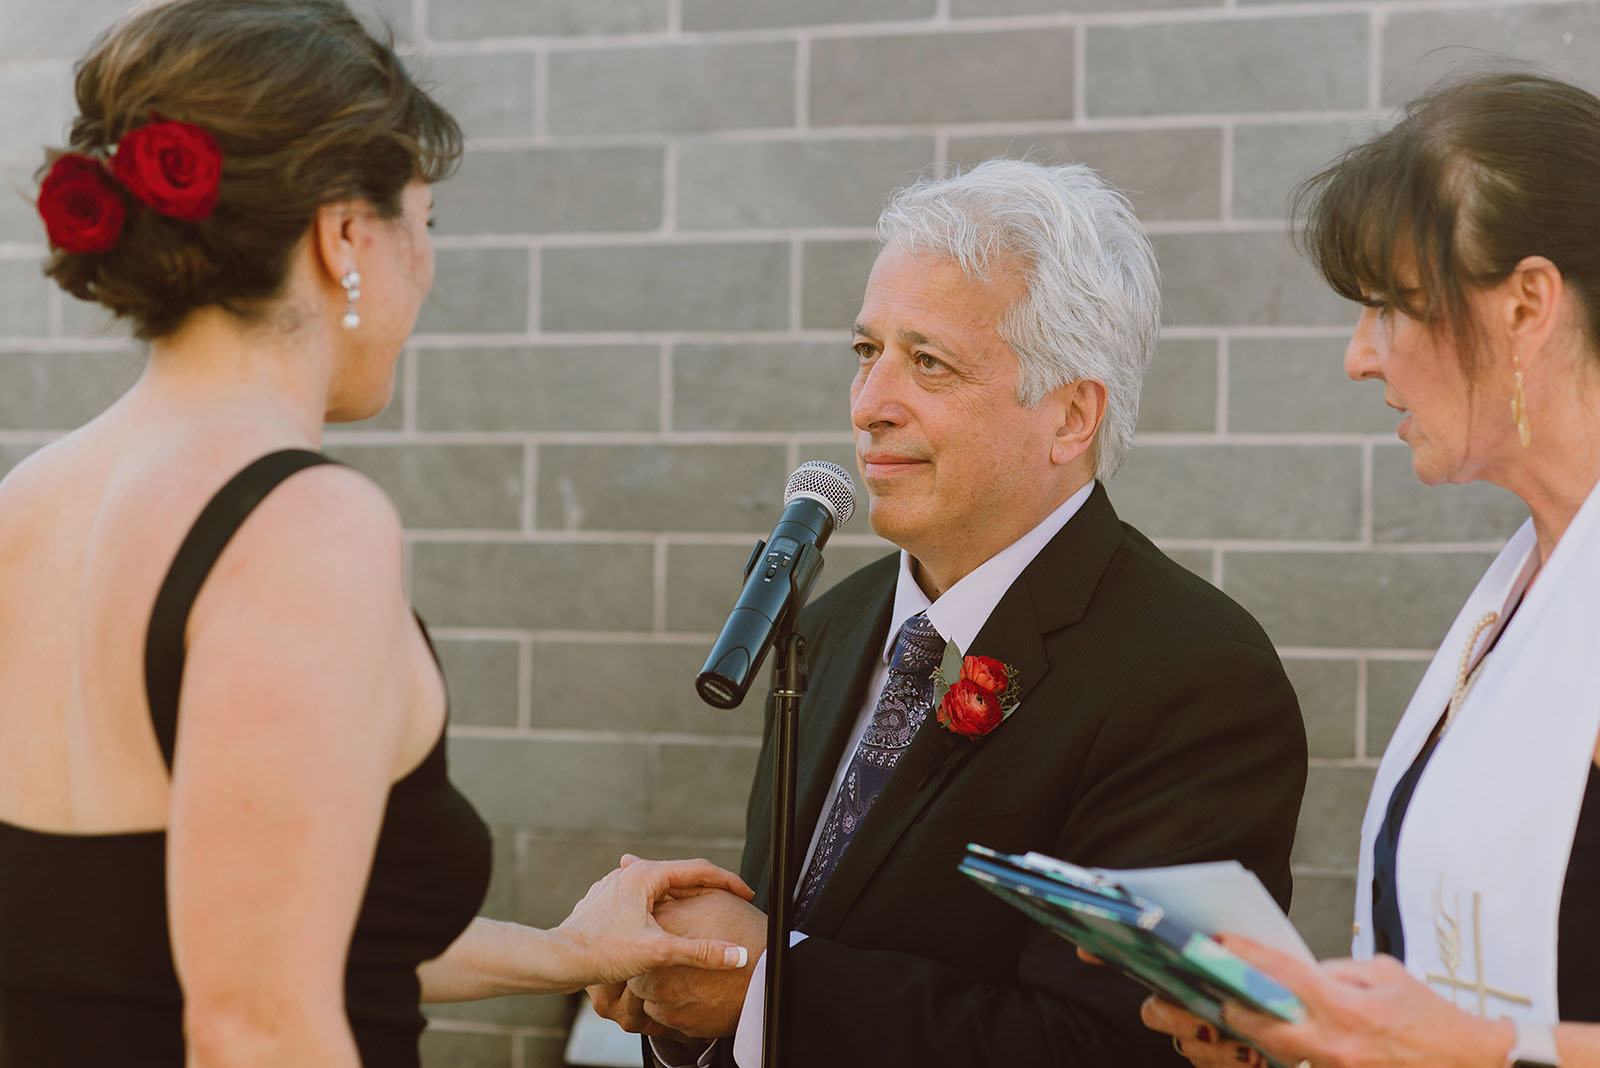 Groom exchanging vows at his Ecotrust Wedding